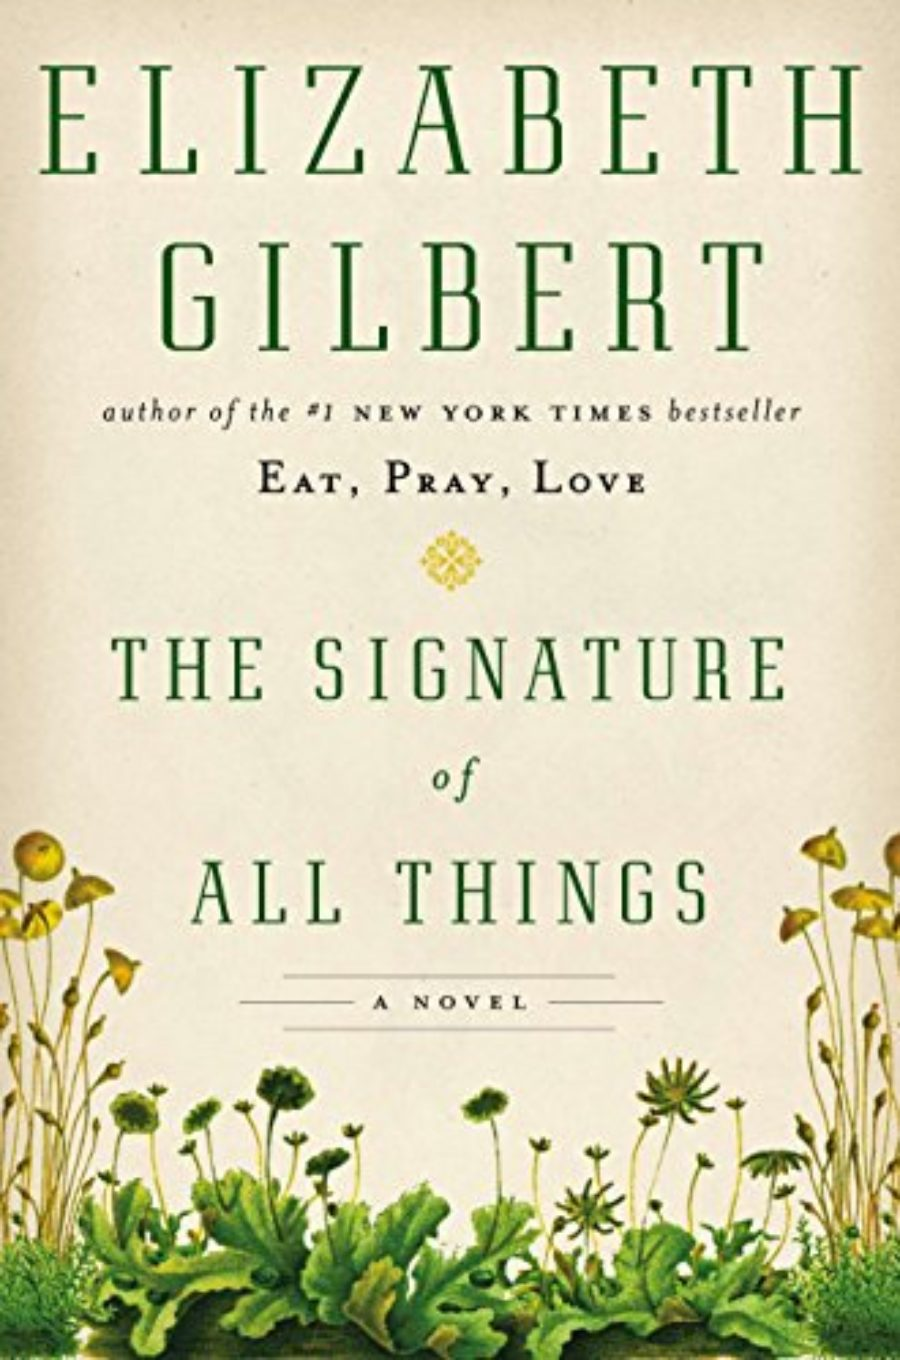 Elizabeth Gilbert Choosing Curiosity Over Fear The On Being Project